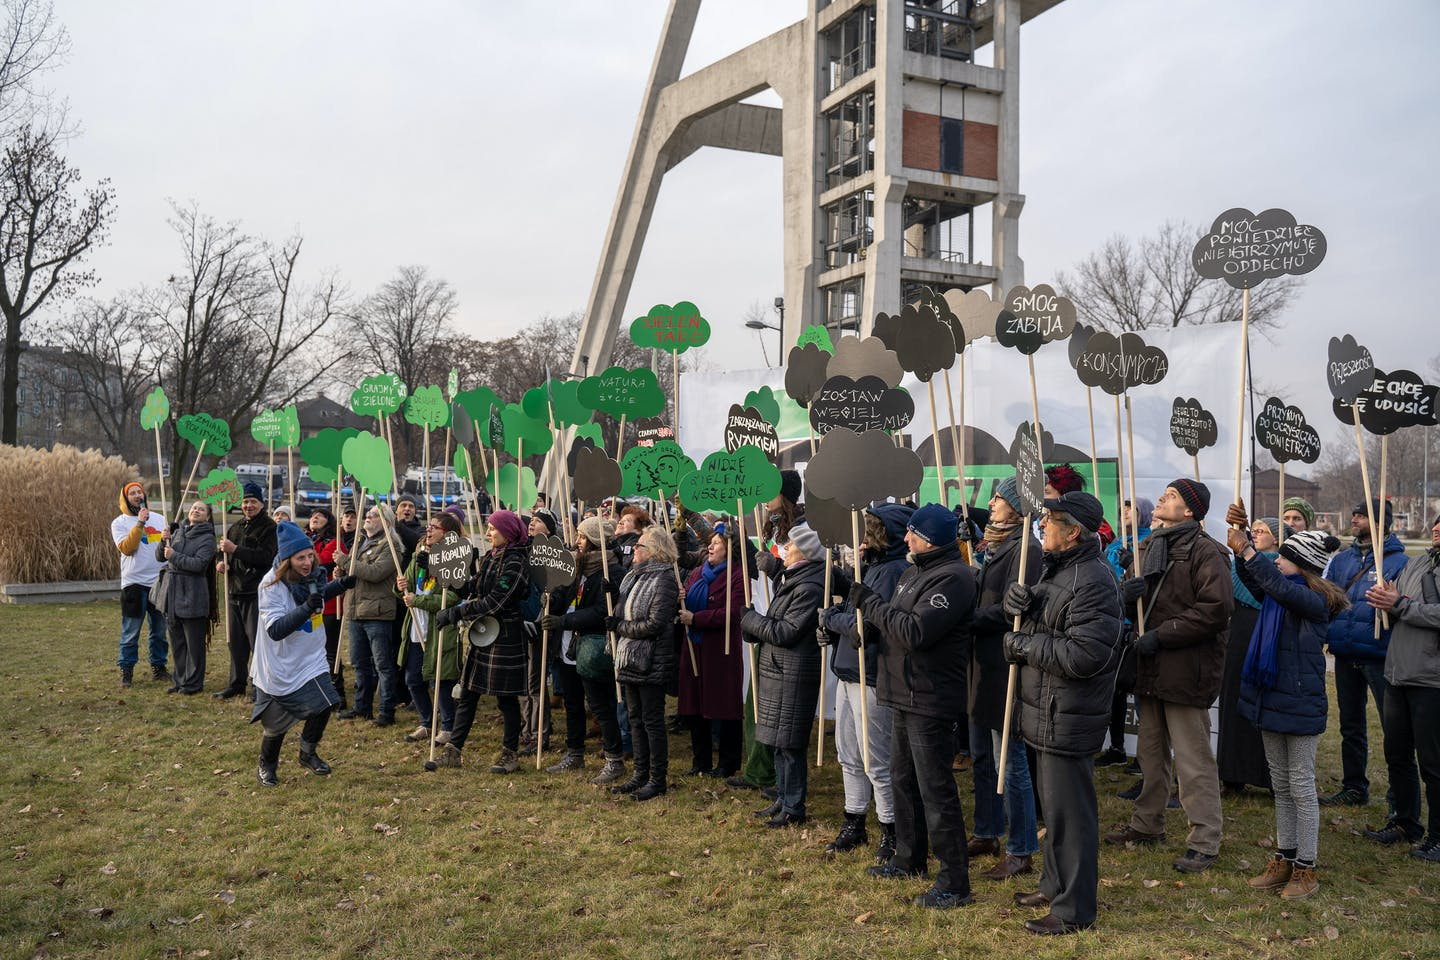 In connection with the beginning of the COP24 UN climate summit, activists of the Democracy Action campaign demonstrated in Chorzów.